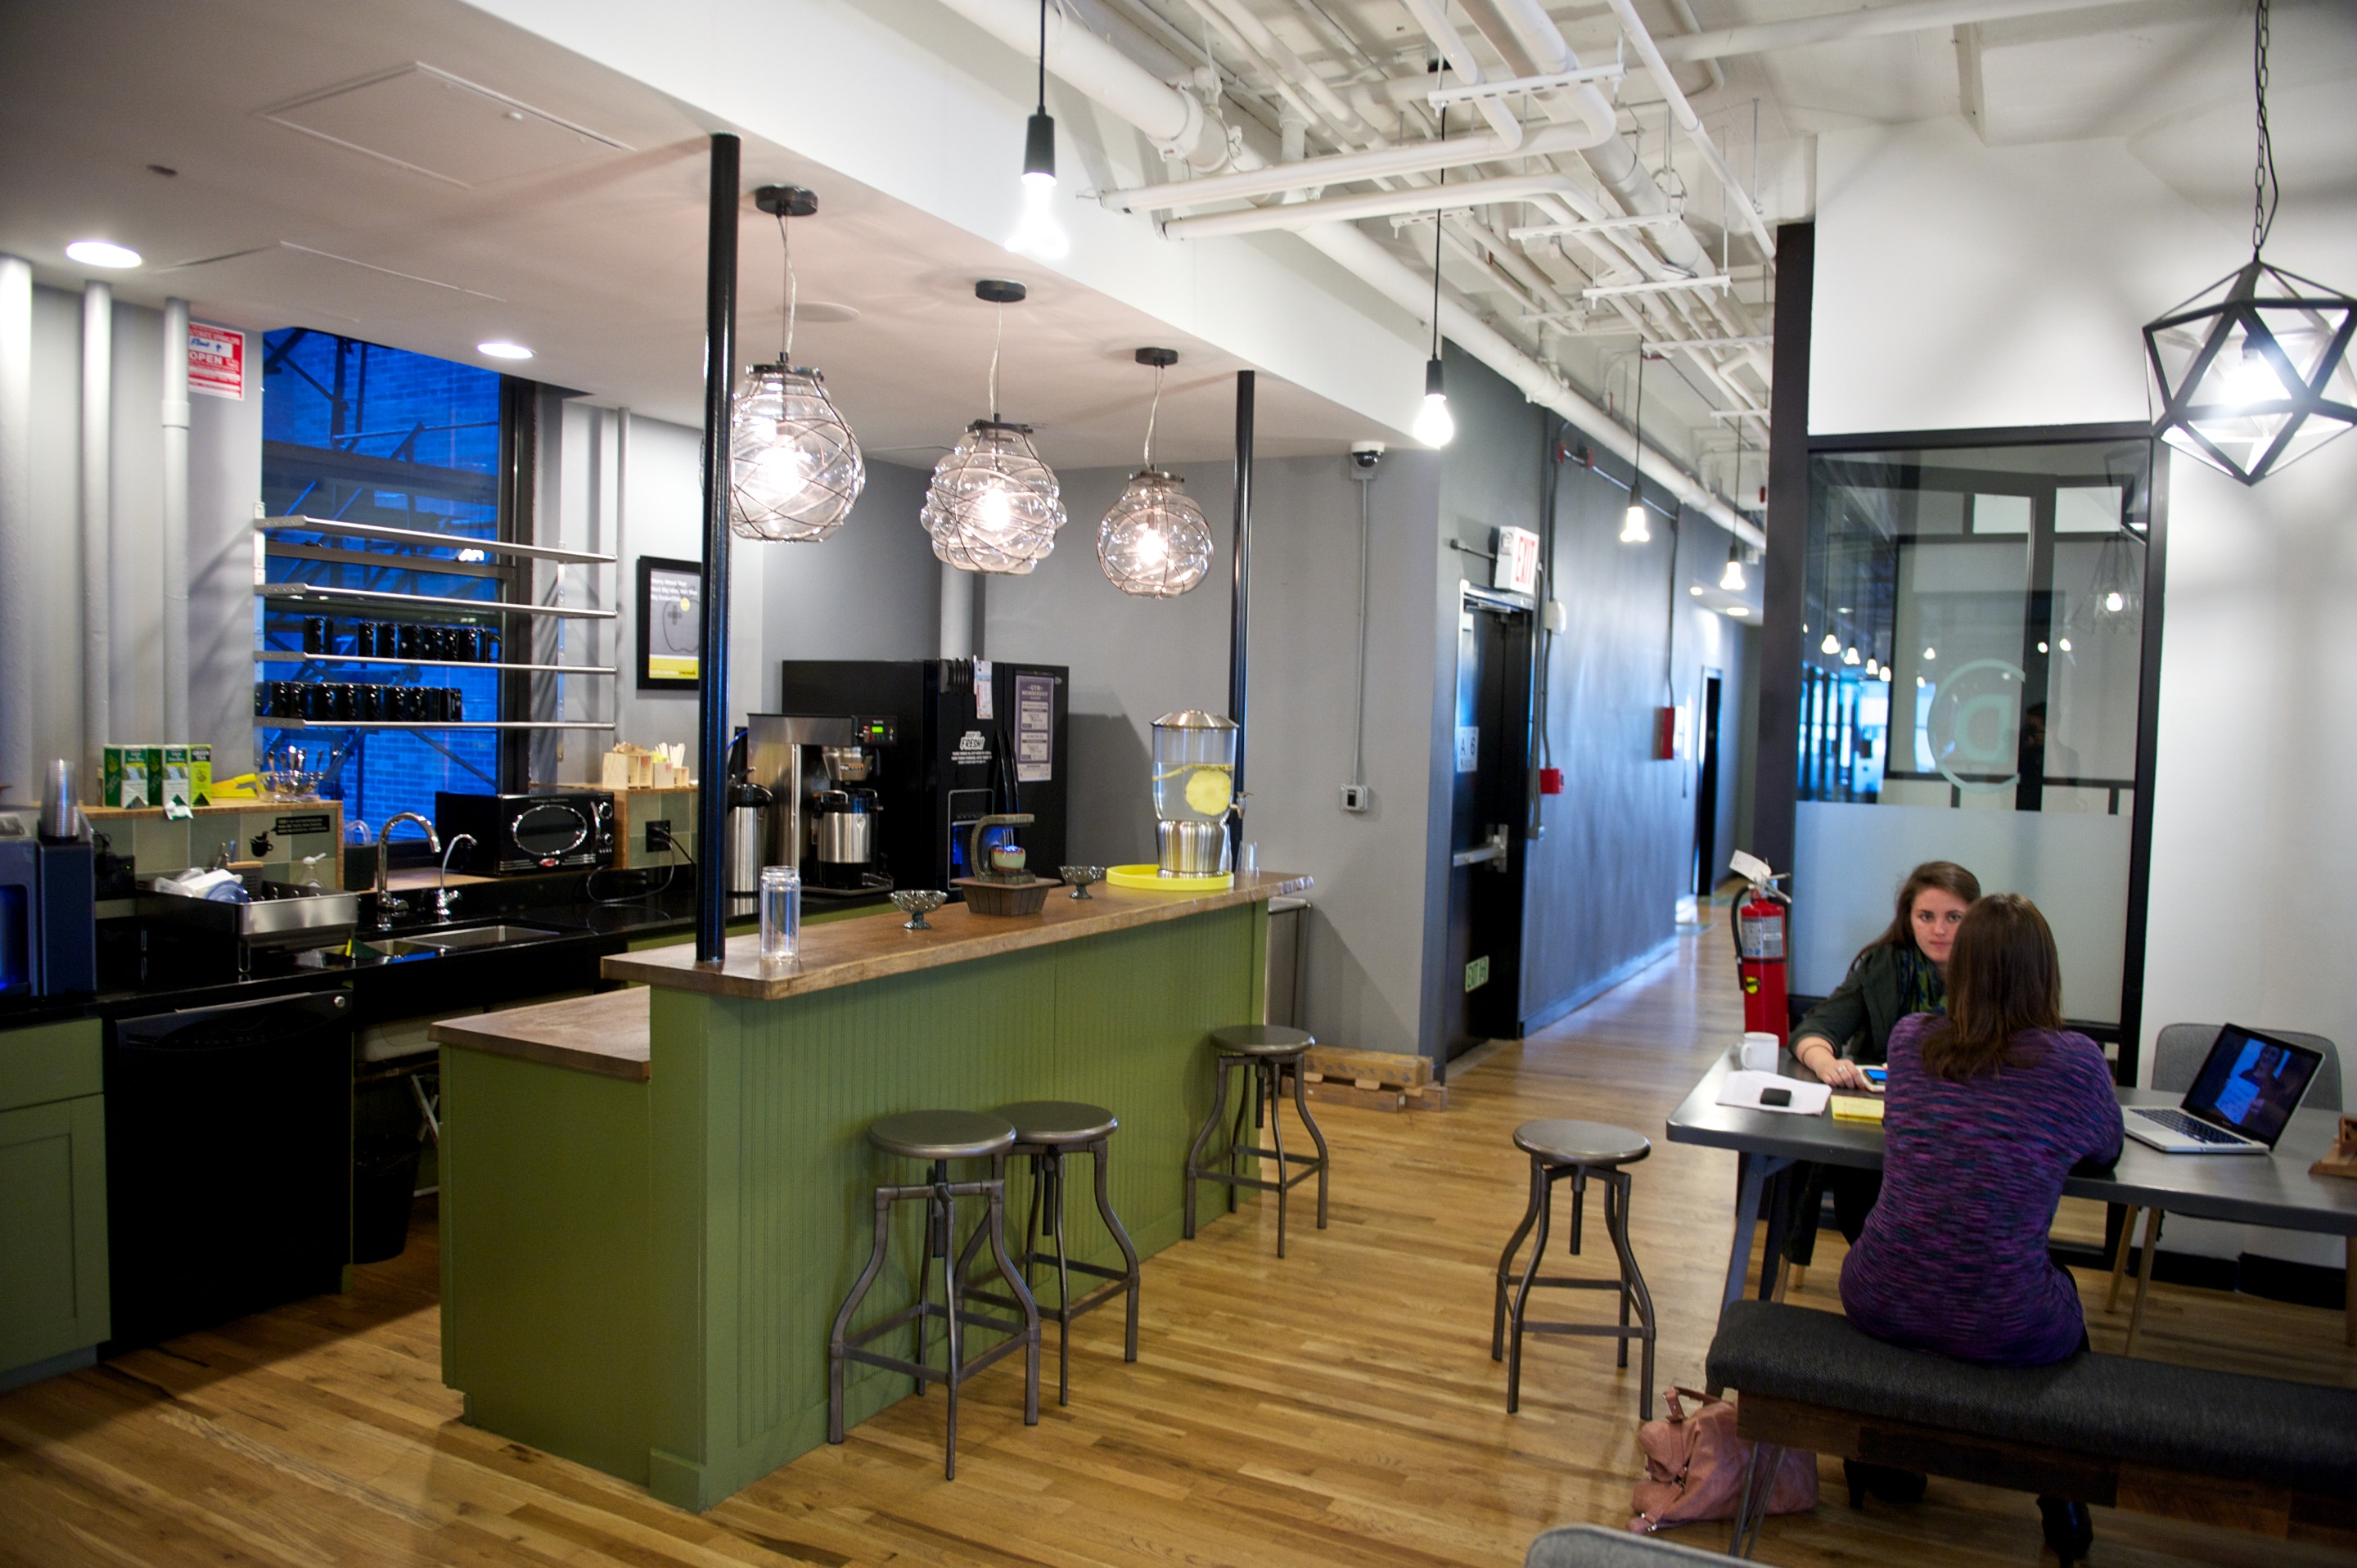 WeWork-SoHo-West-Kitchen-Dinning-Room - It's Just JustinIt ...